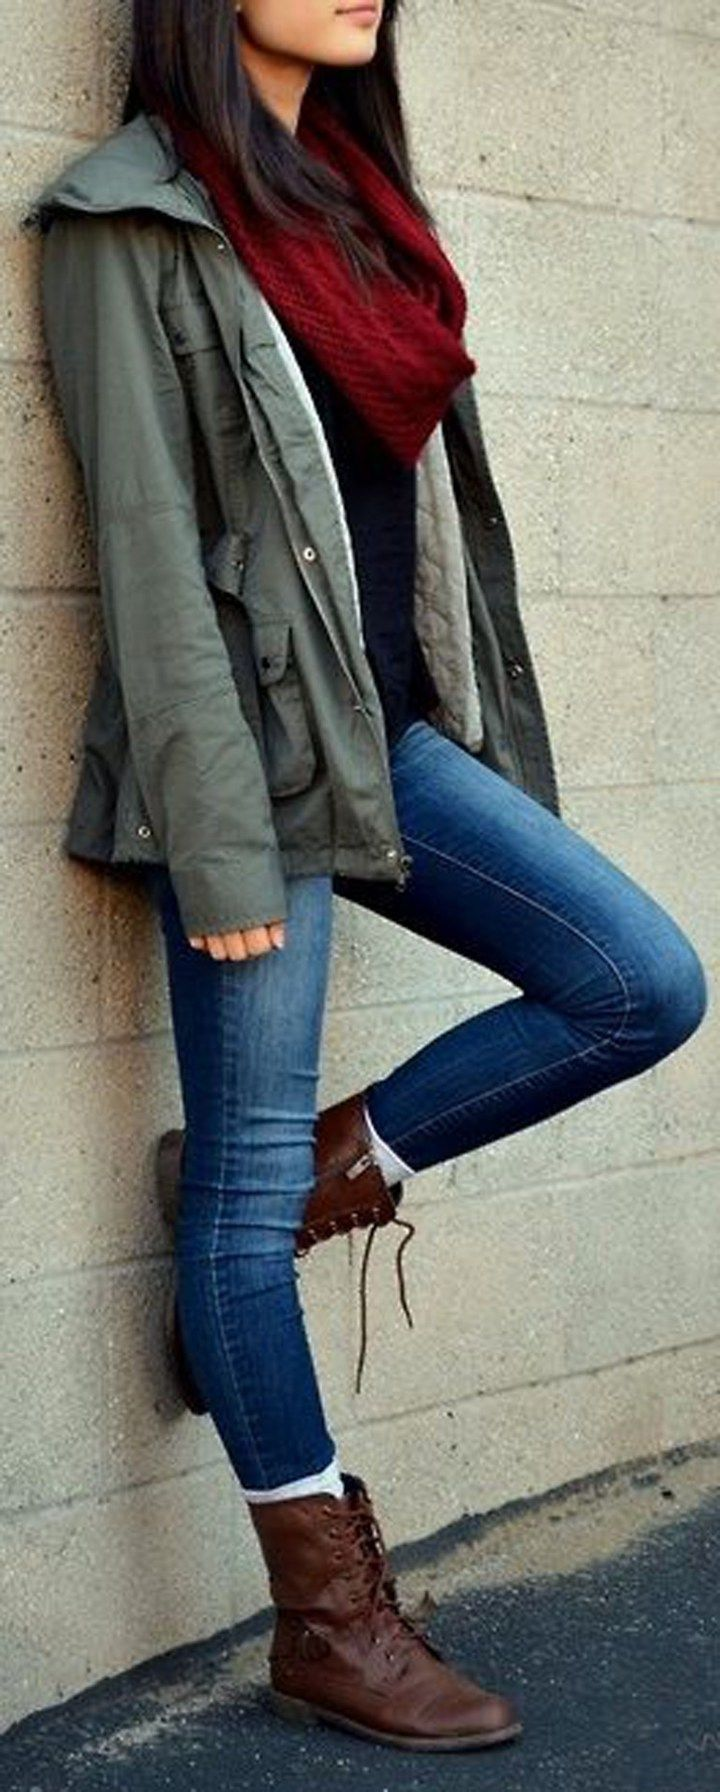 Chic Casual Winter Outfits Ideas for Teen Girls for School